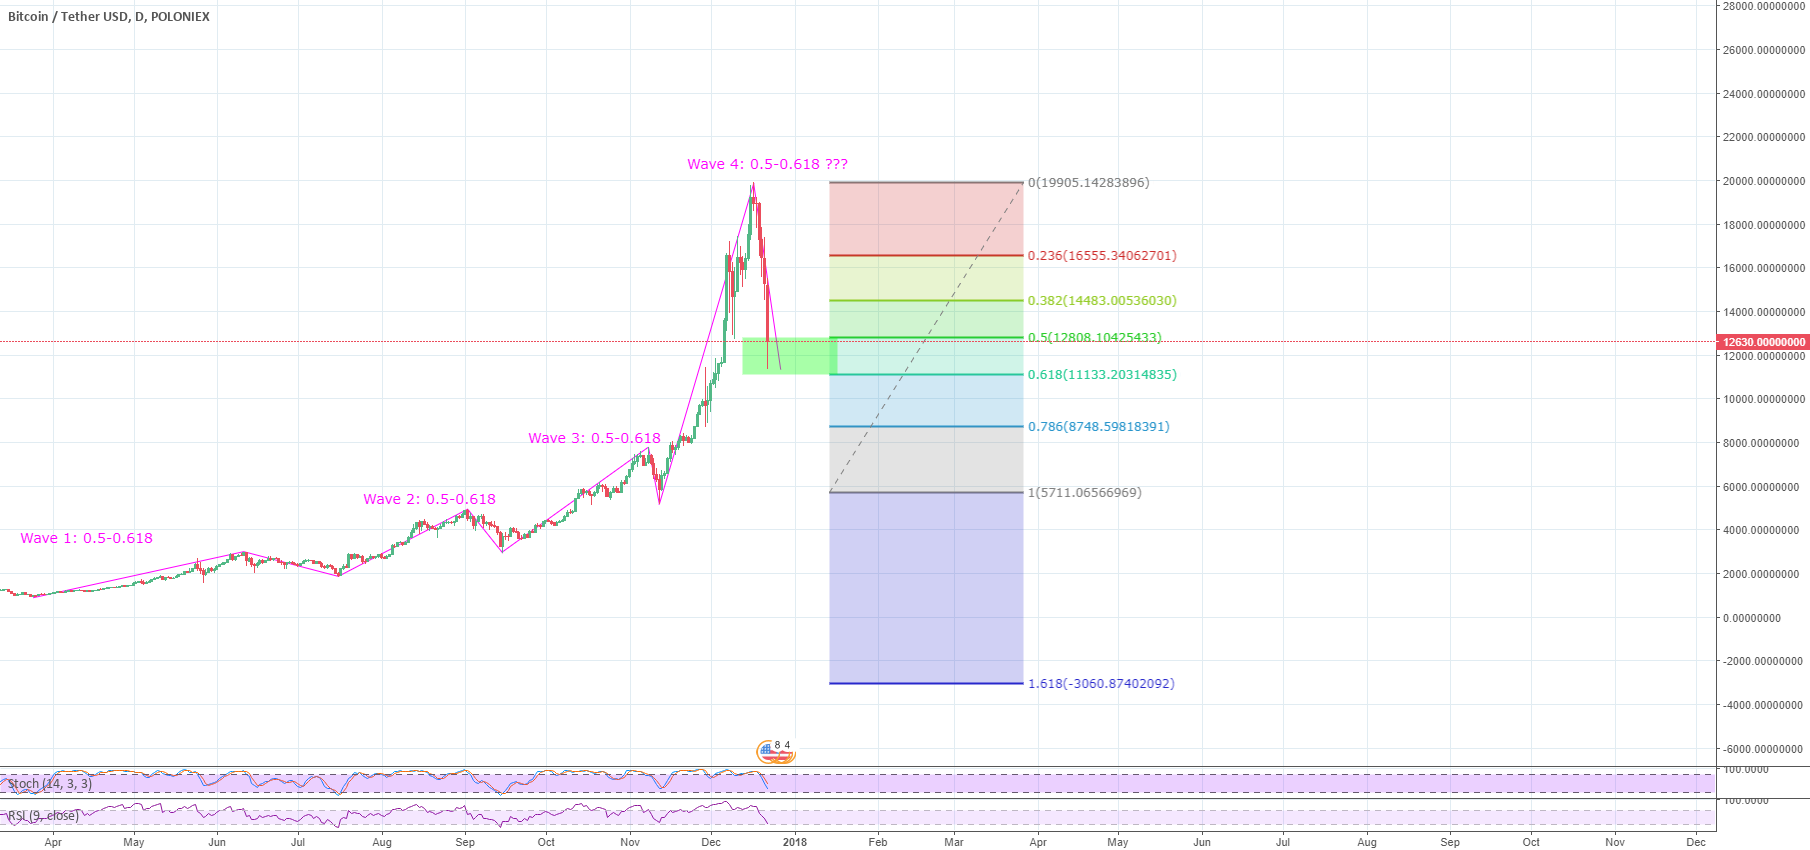 BITCOIN 4th wave completion